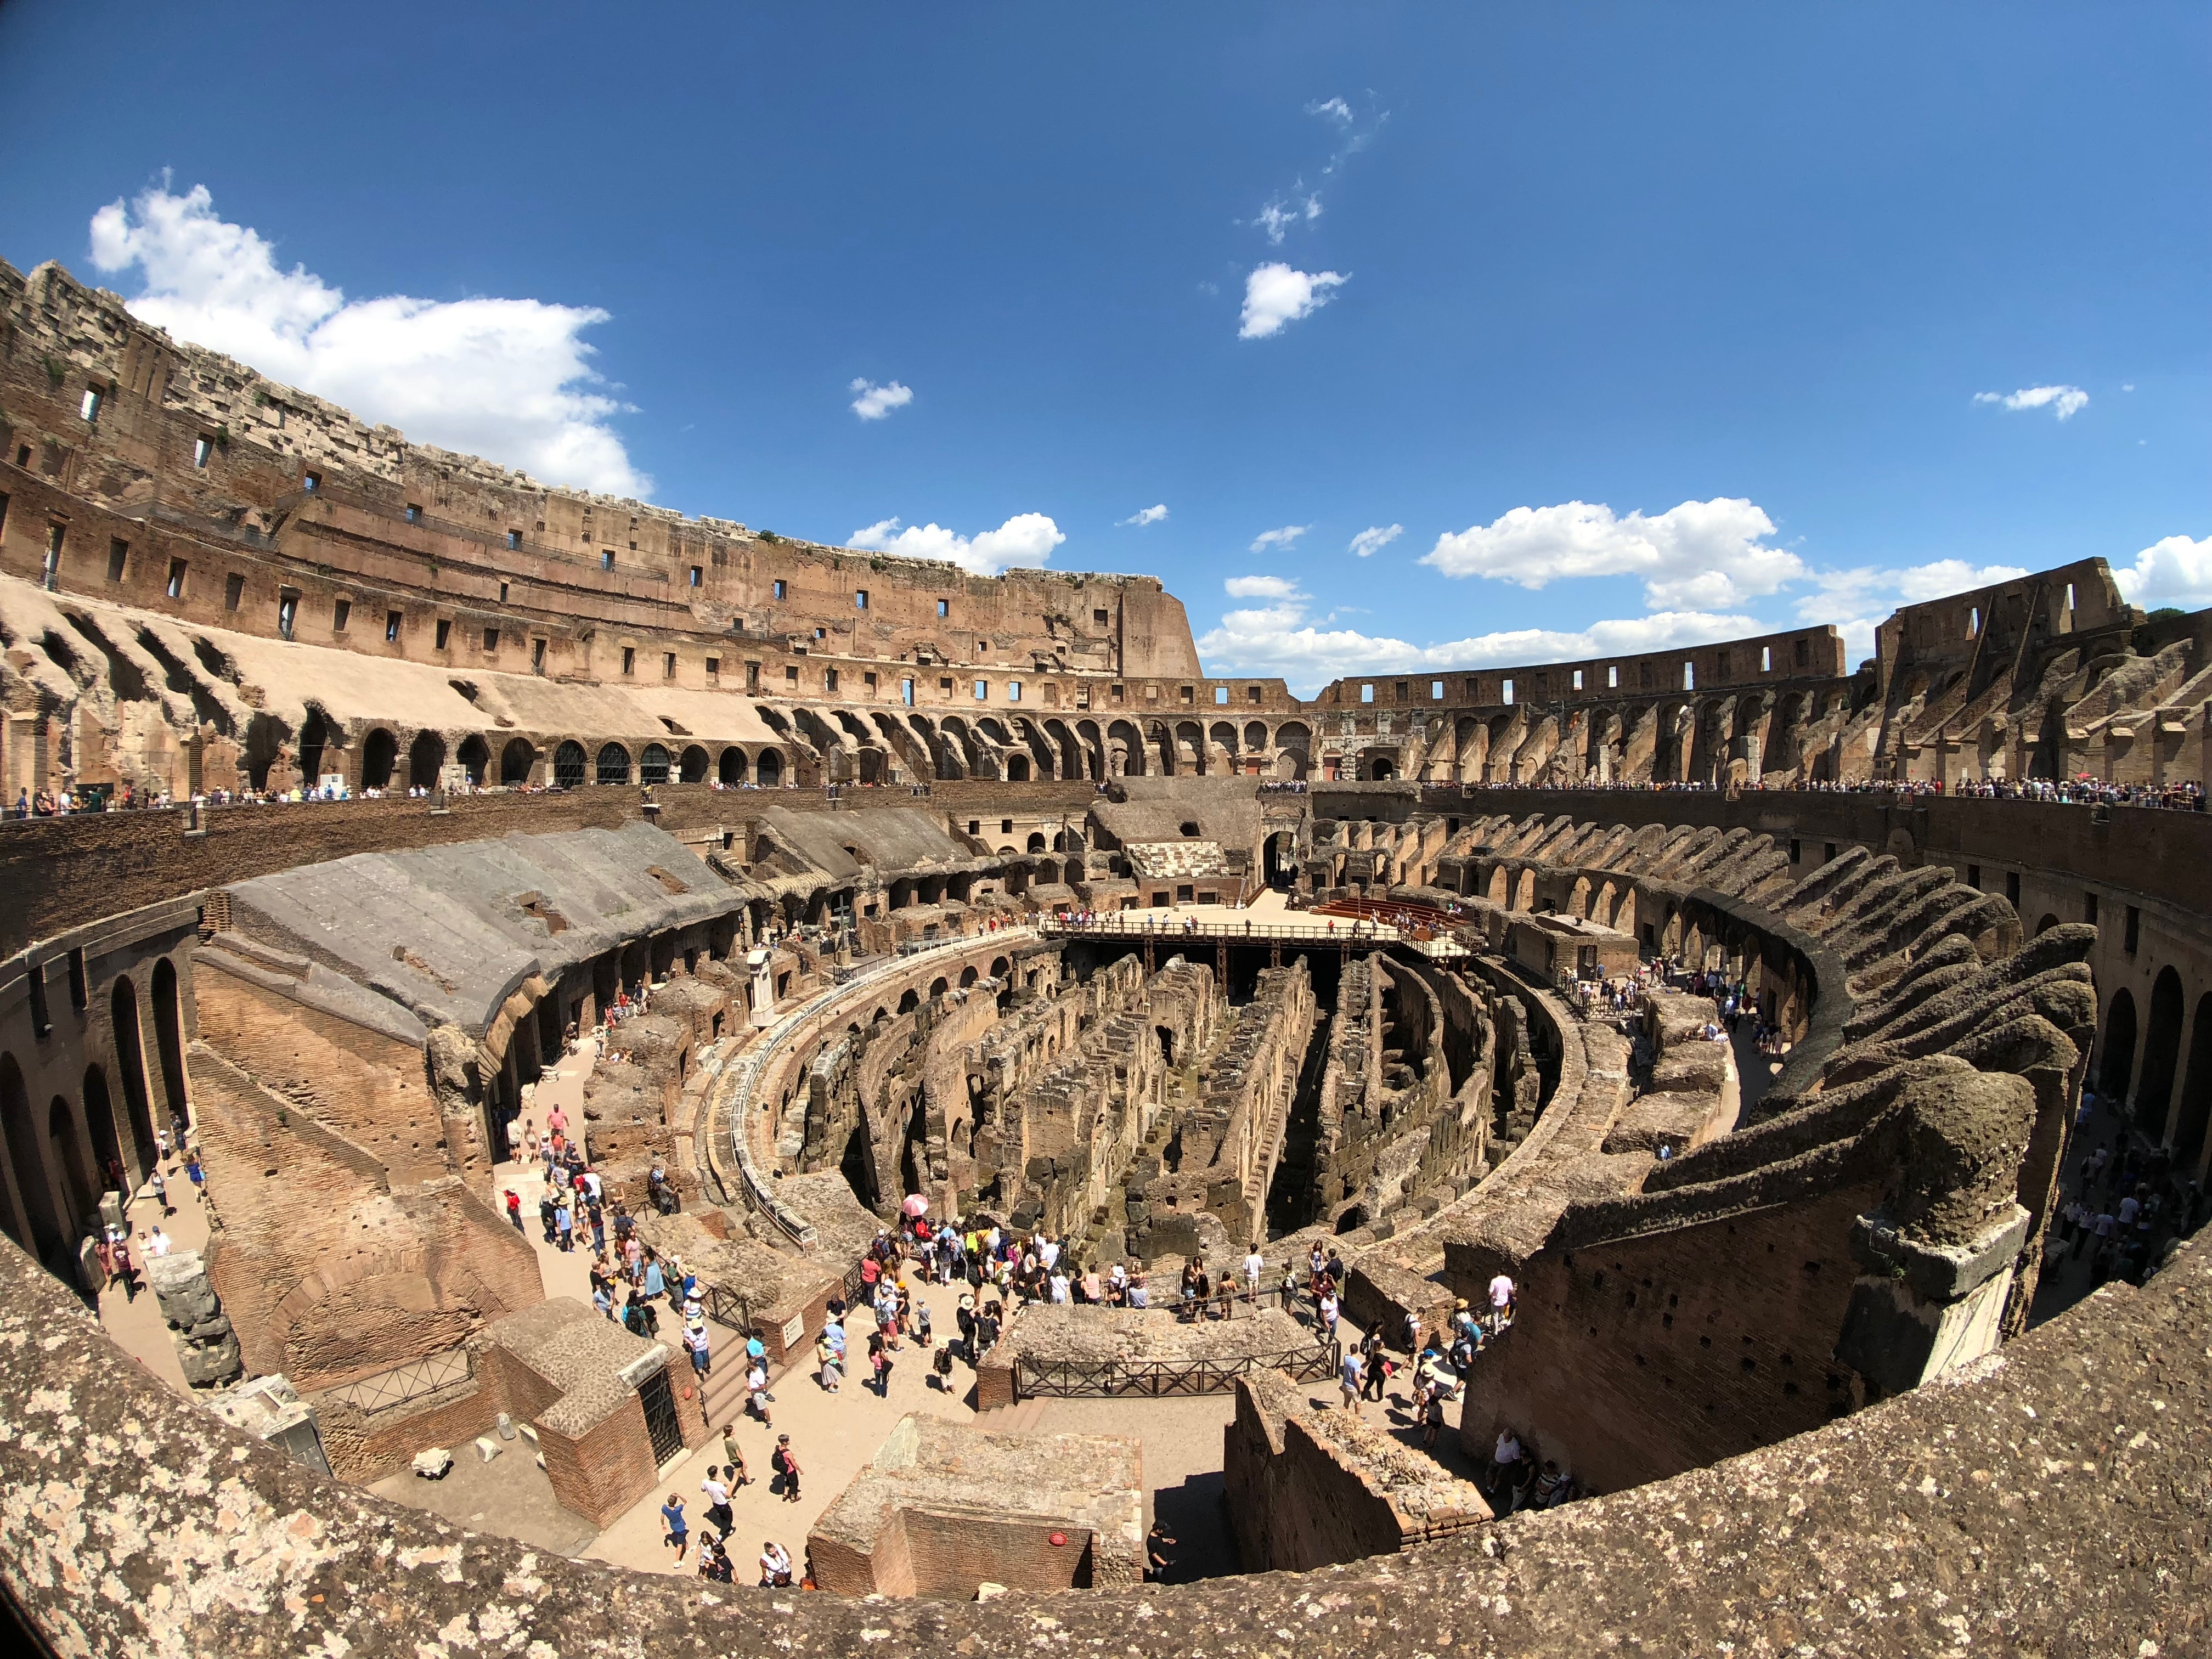 Why was the Colosseum Built?